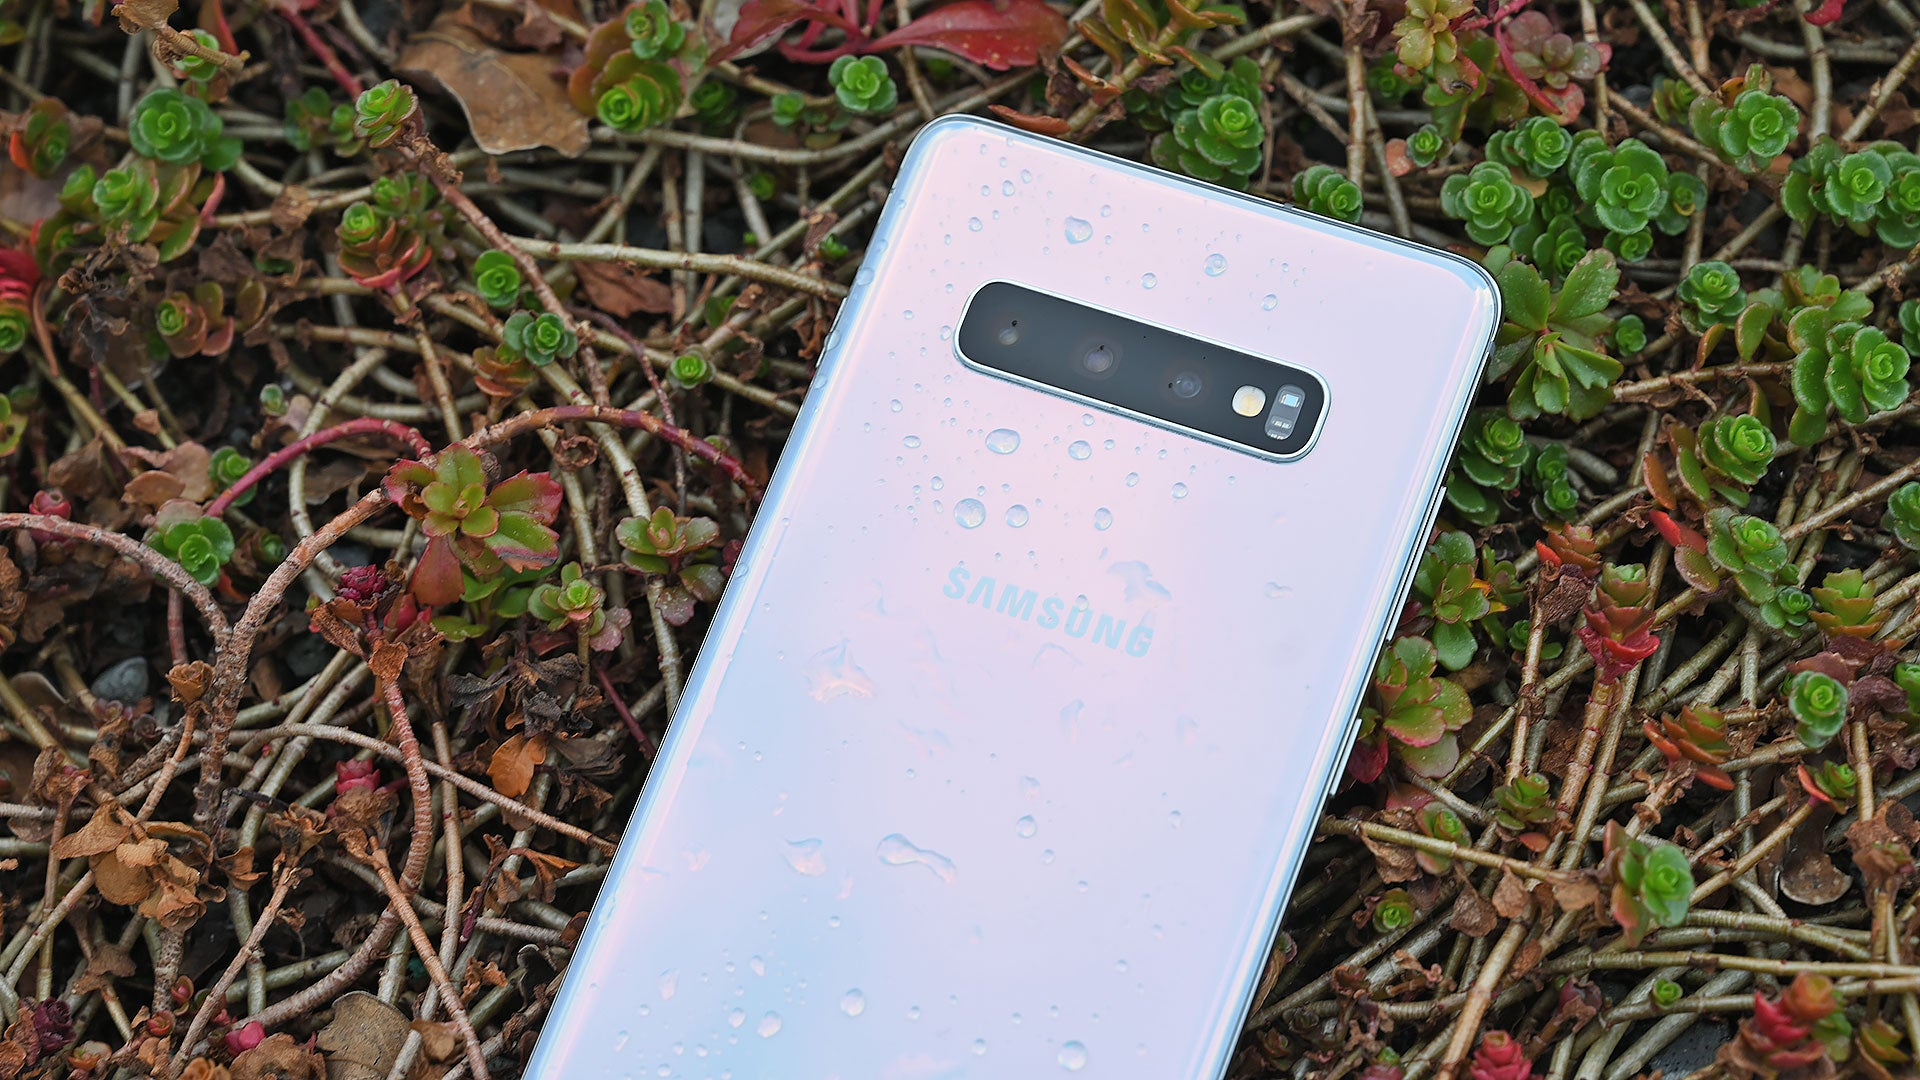 android consumer-tech galaxy-s10 s10 samsung-galaxy smartphones updates